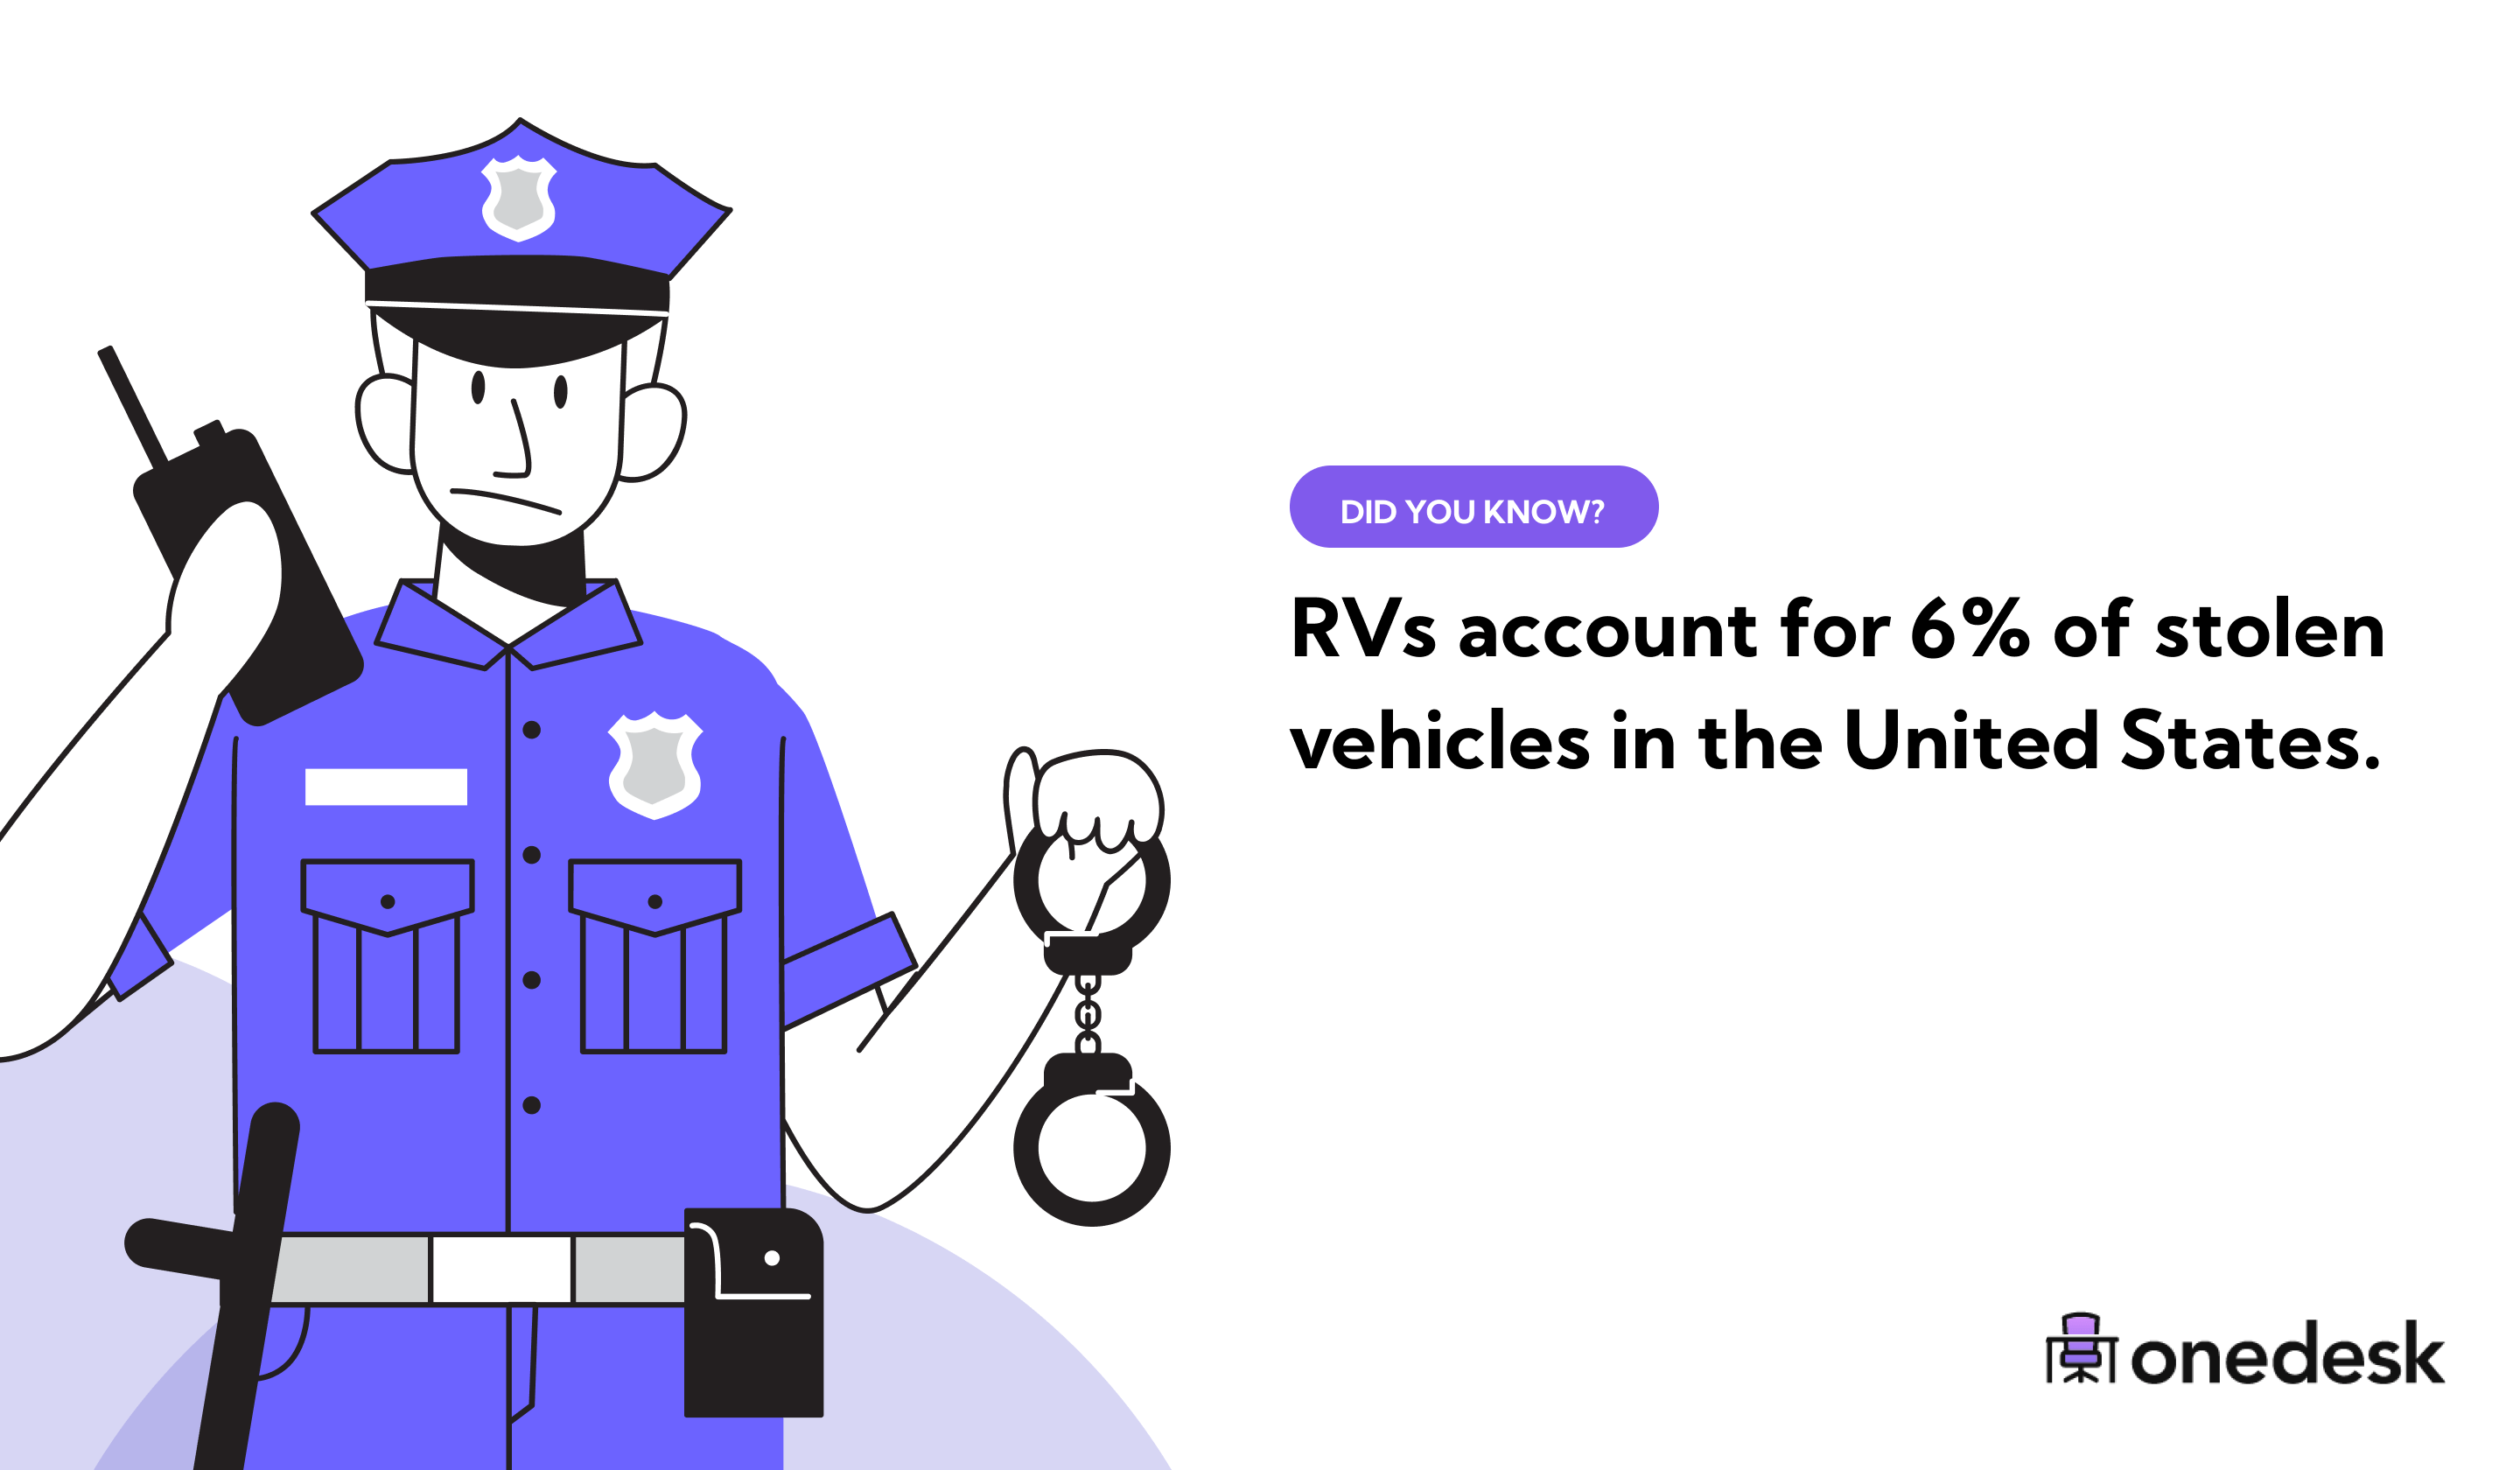 RVs account for 6% of stolen vehicles in the USA